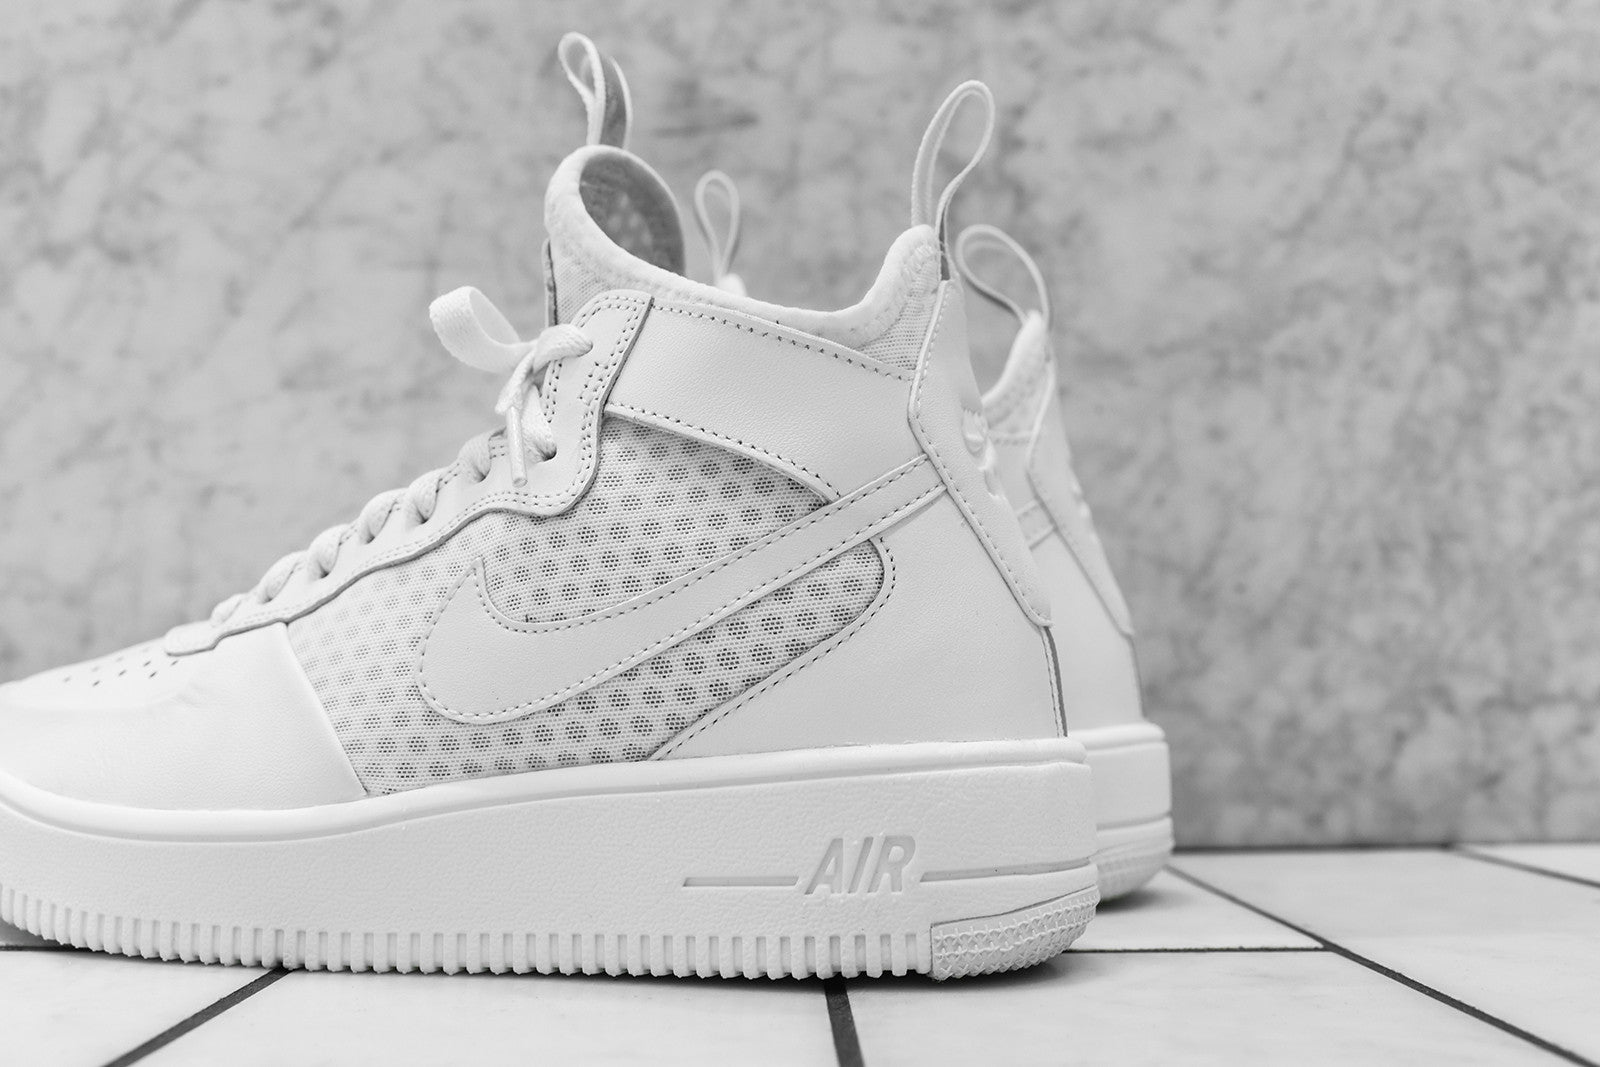 Nike WMNS Air Force 1 Ultraforce Mid - Summit White